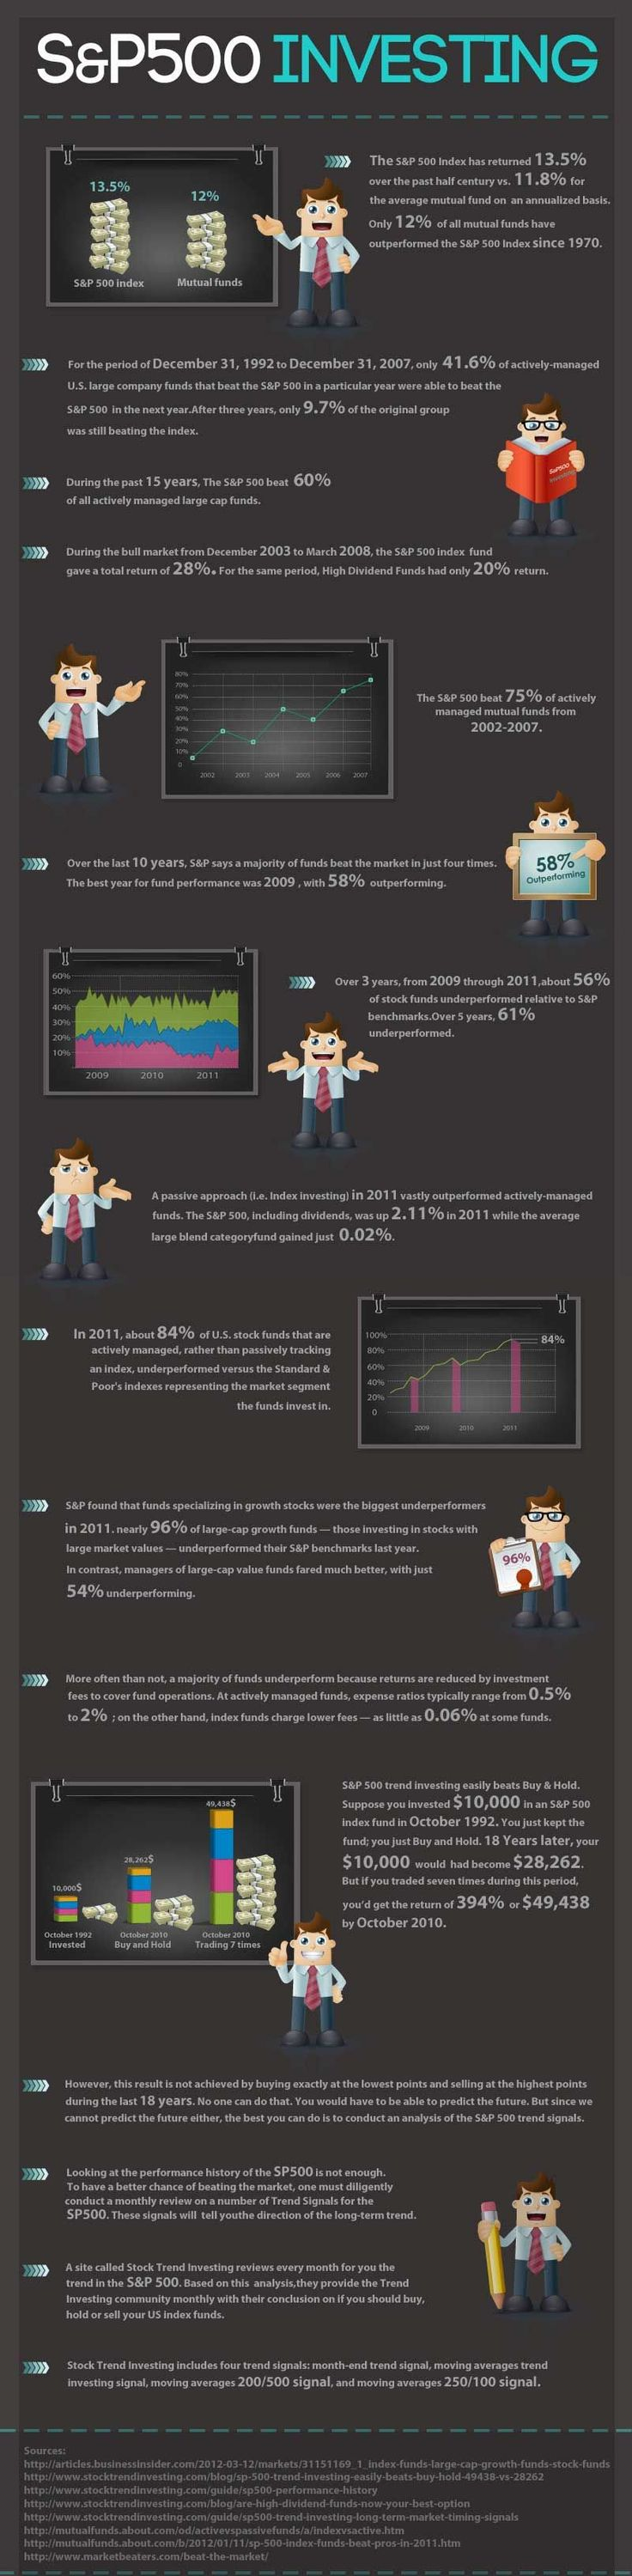 S&P 500 Stock Investing Infographic. The best take away from this infographic is that index investing is profitable and you can't afford to NOT be investing in the stock market or mutual funds. The Vanguard S&P 500 fund is a very low expense good mutual fund to stay fully vested in the market. {More on Trading|Successful trading|Trade erfolgreich|FOREX-Trading|Forex-Analysis} on